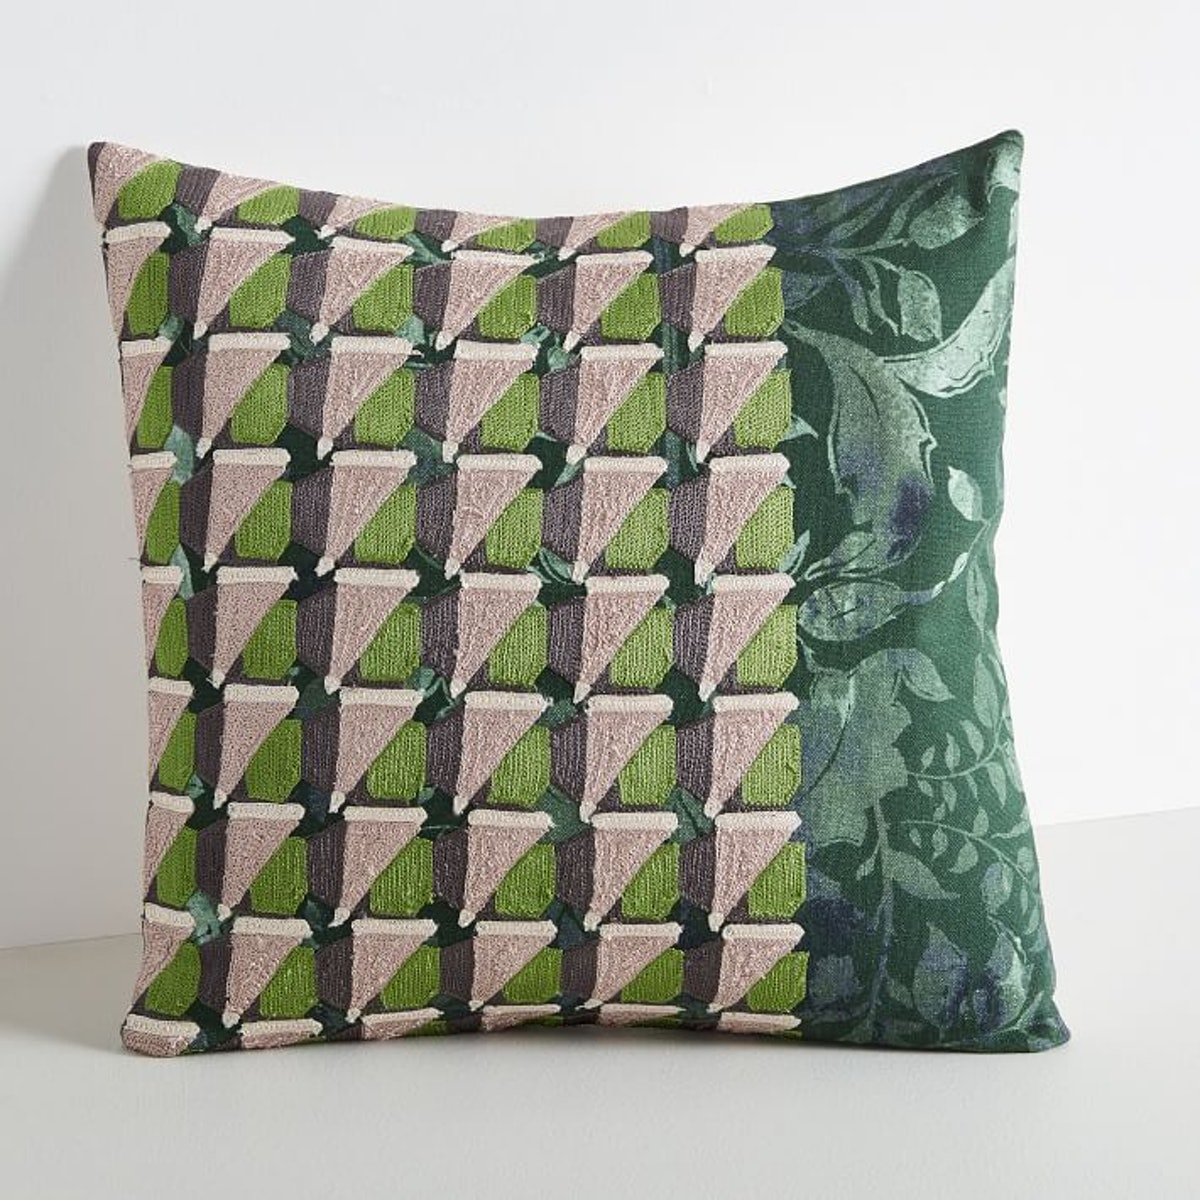 Embroidered Geo Floral Pillow Cover - Dark Green Basil